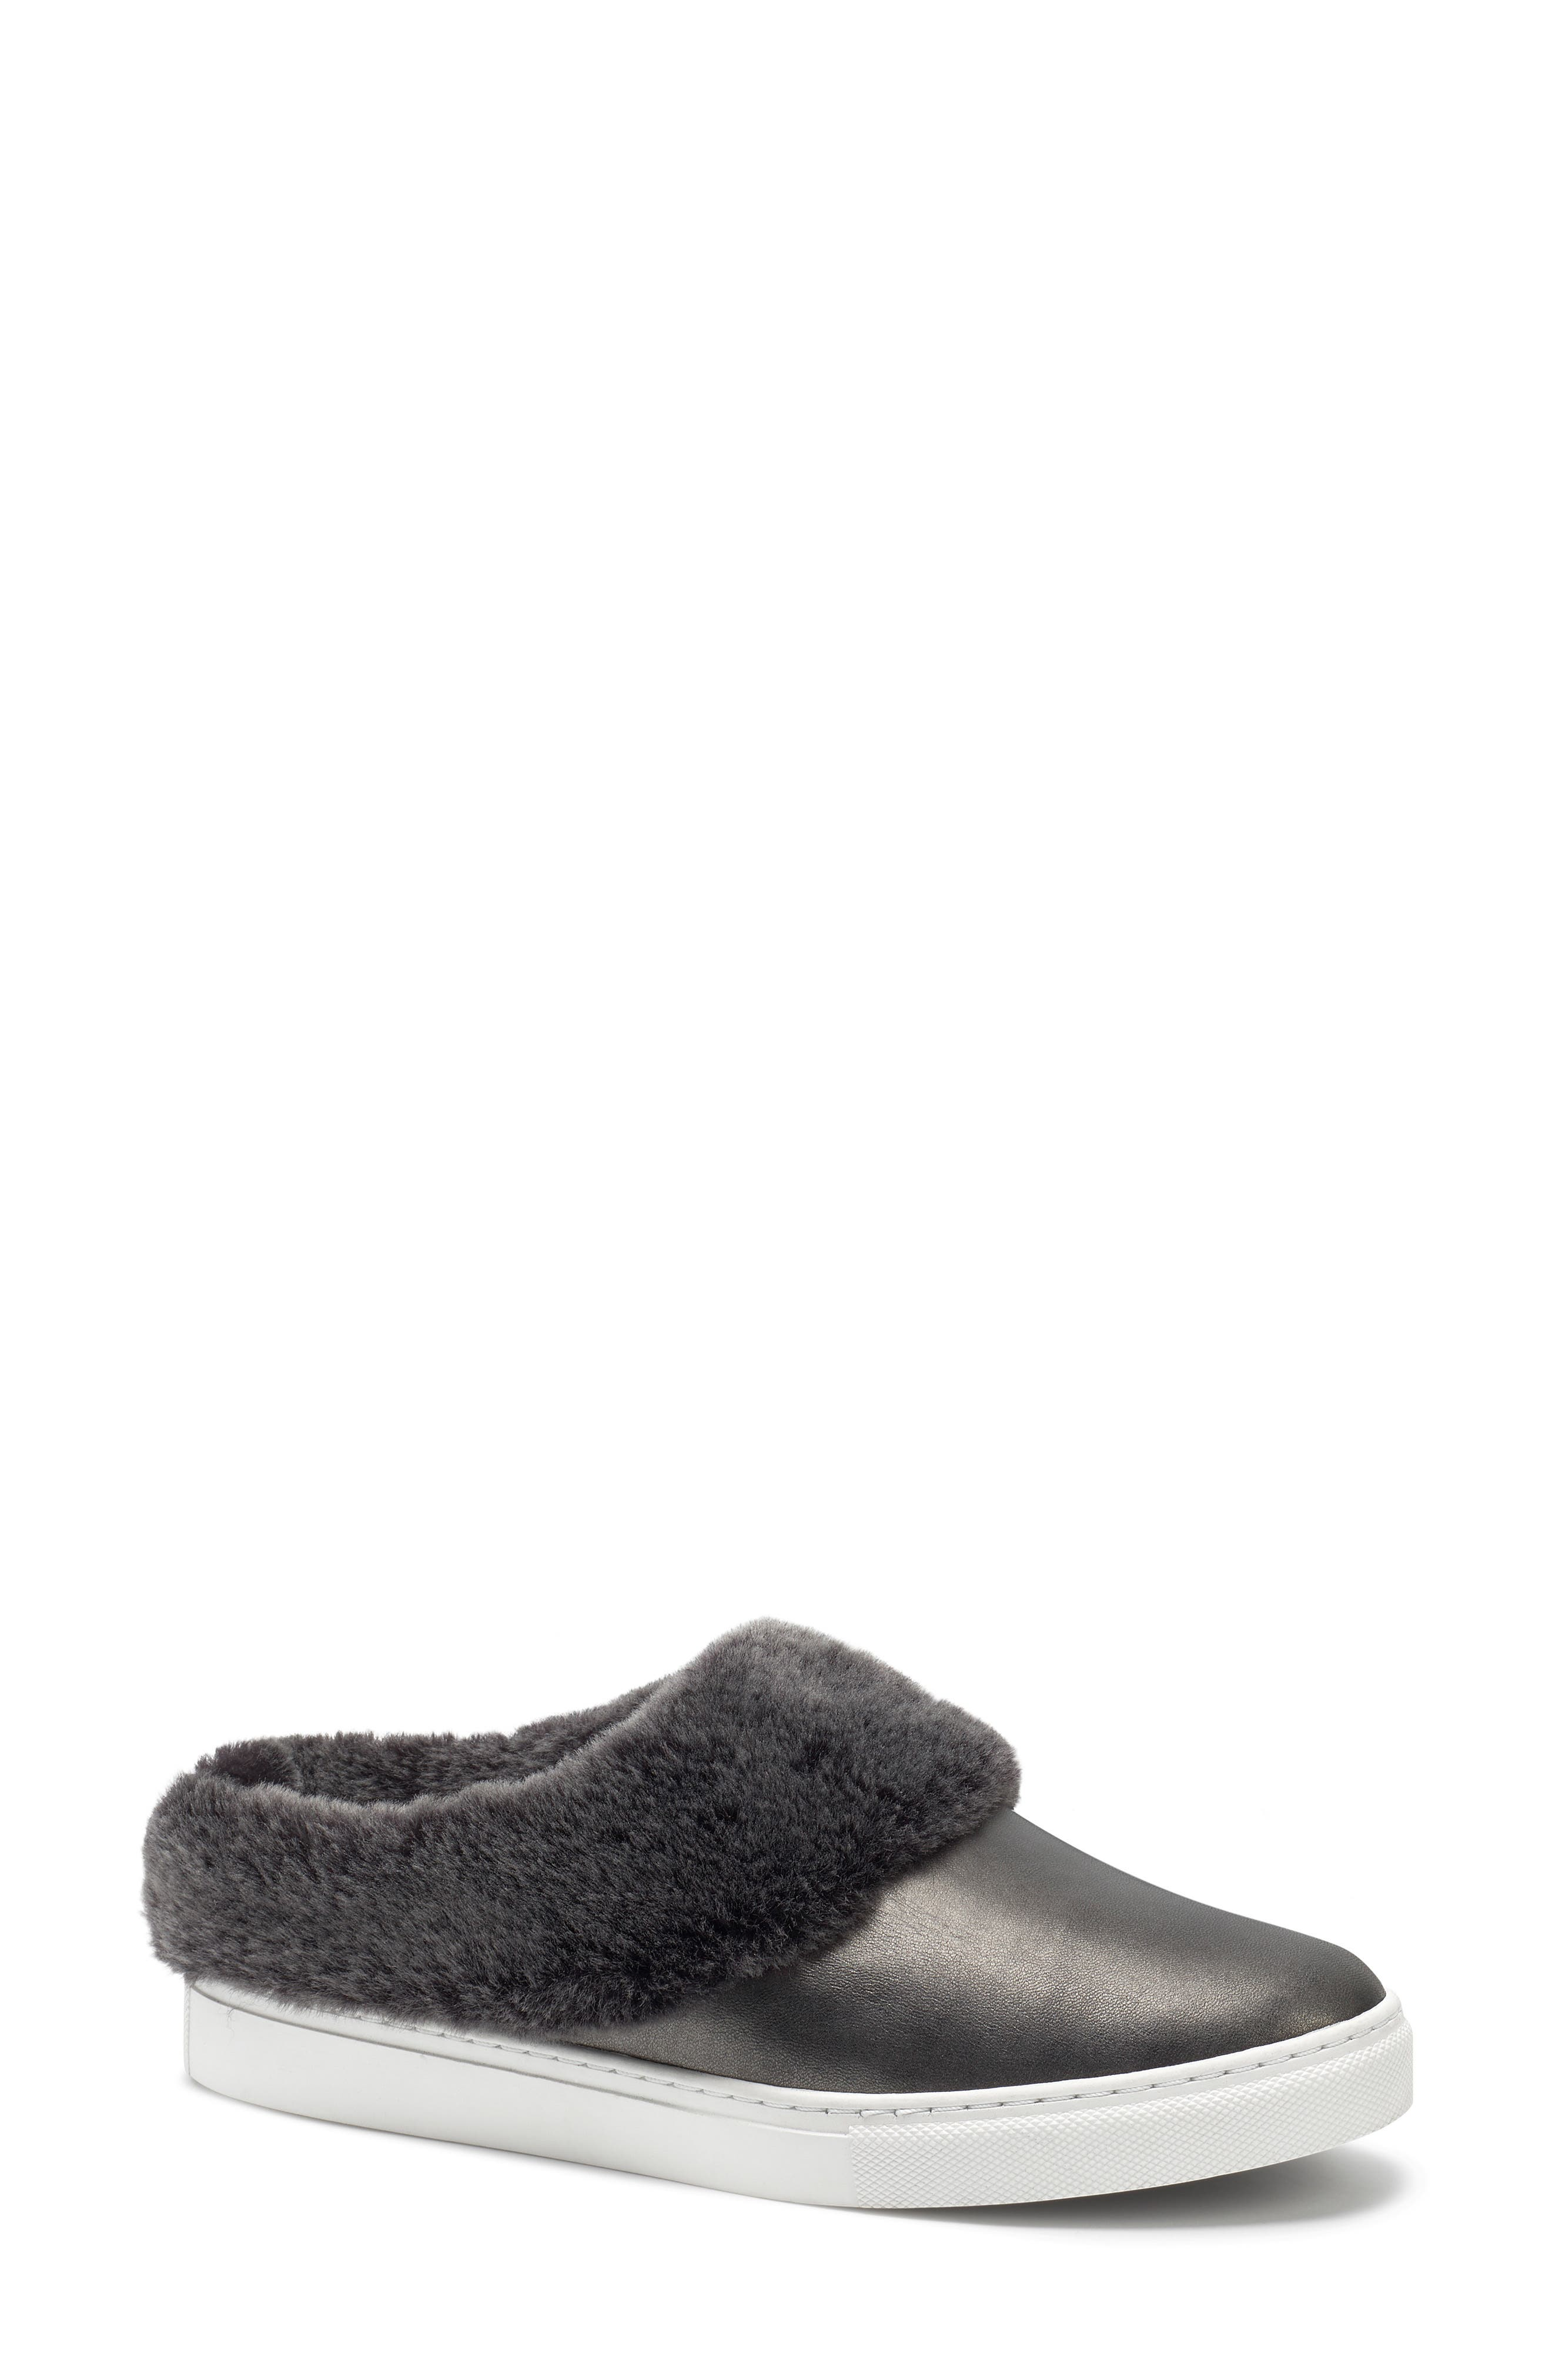 TRASK Lisa Genuine Shearling Trim Slip-On Sneaker, Main, color, PEWTER LEATHER